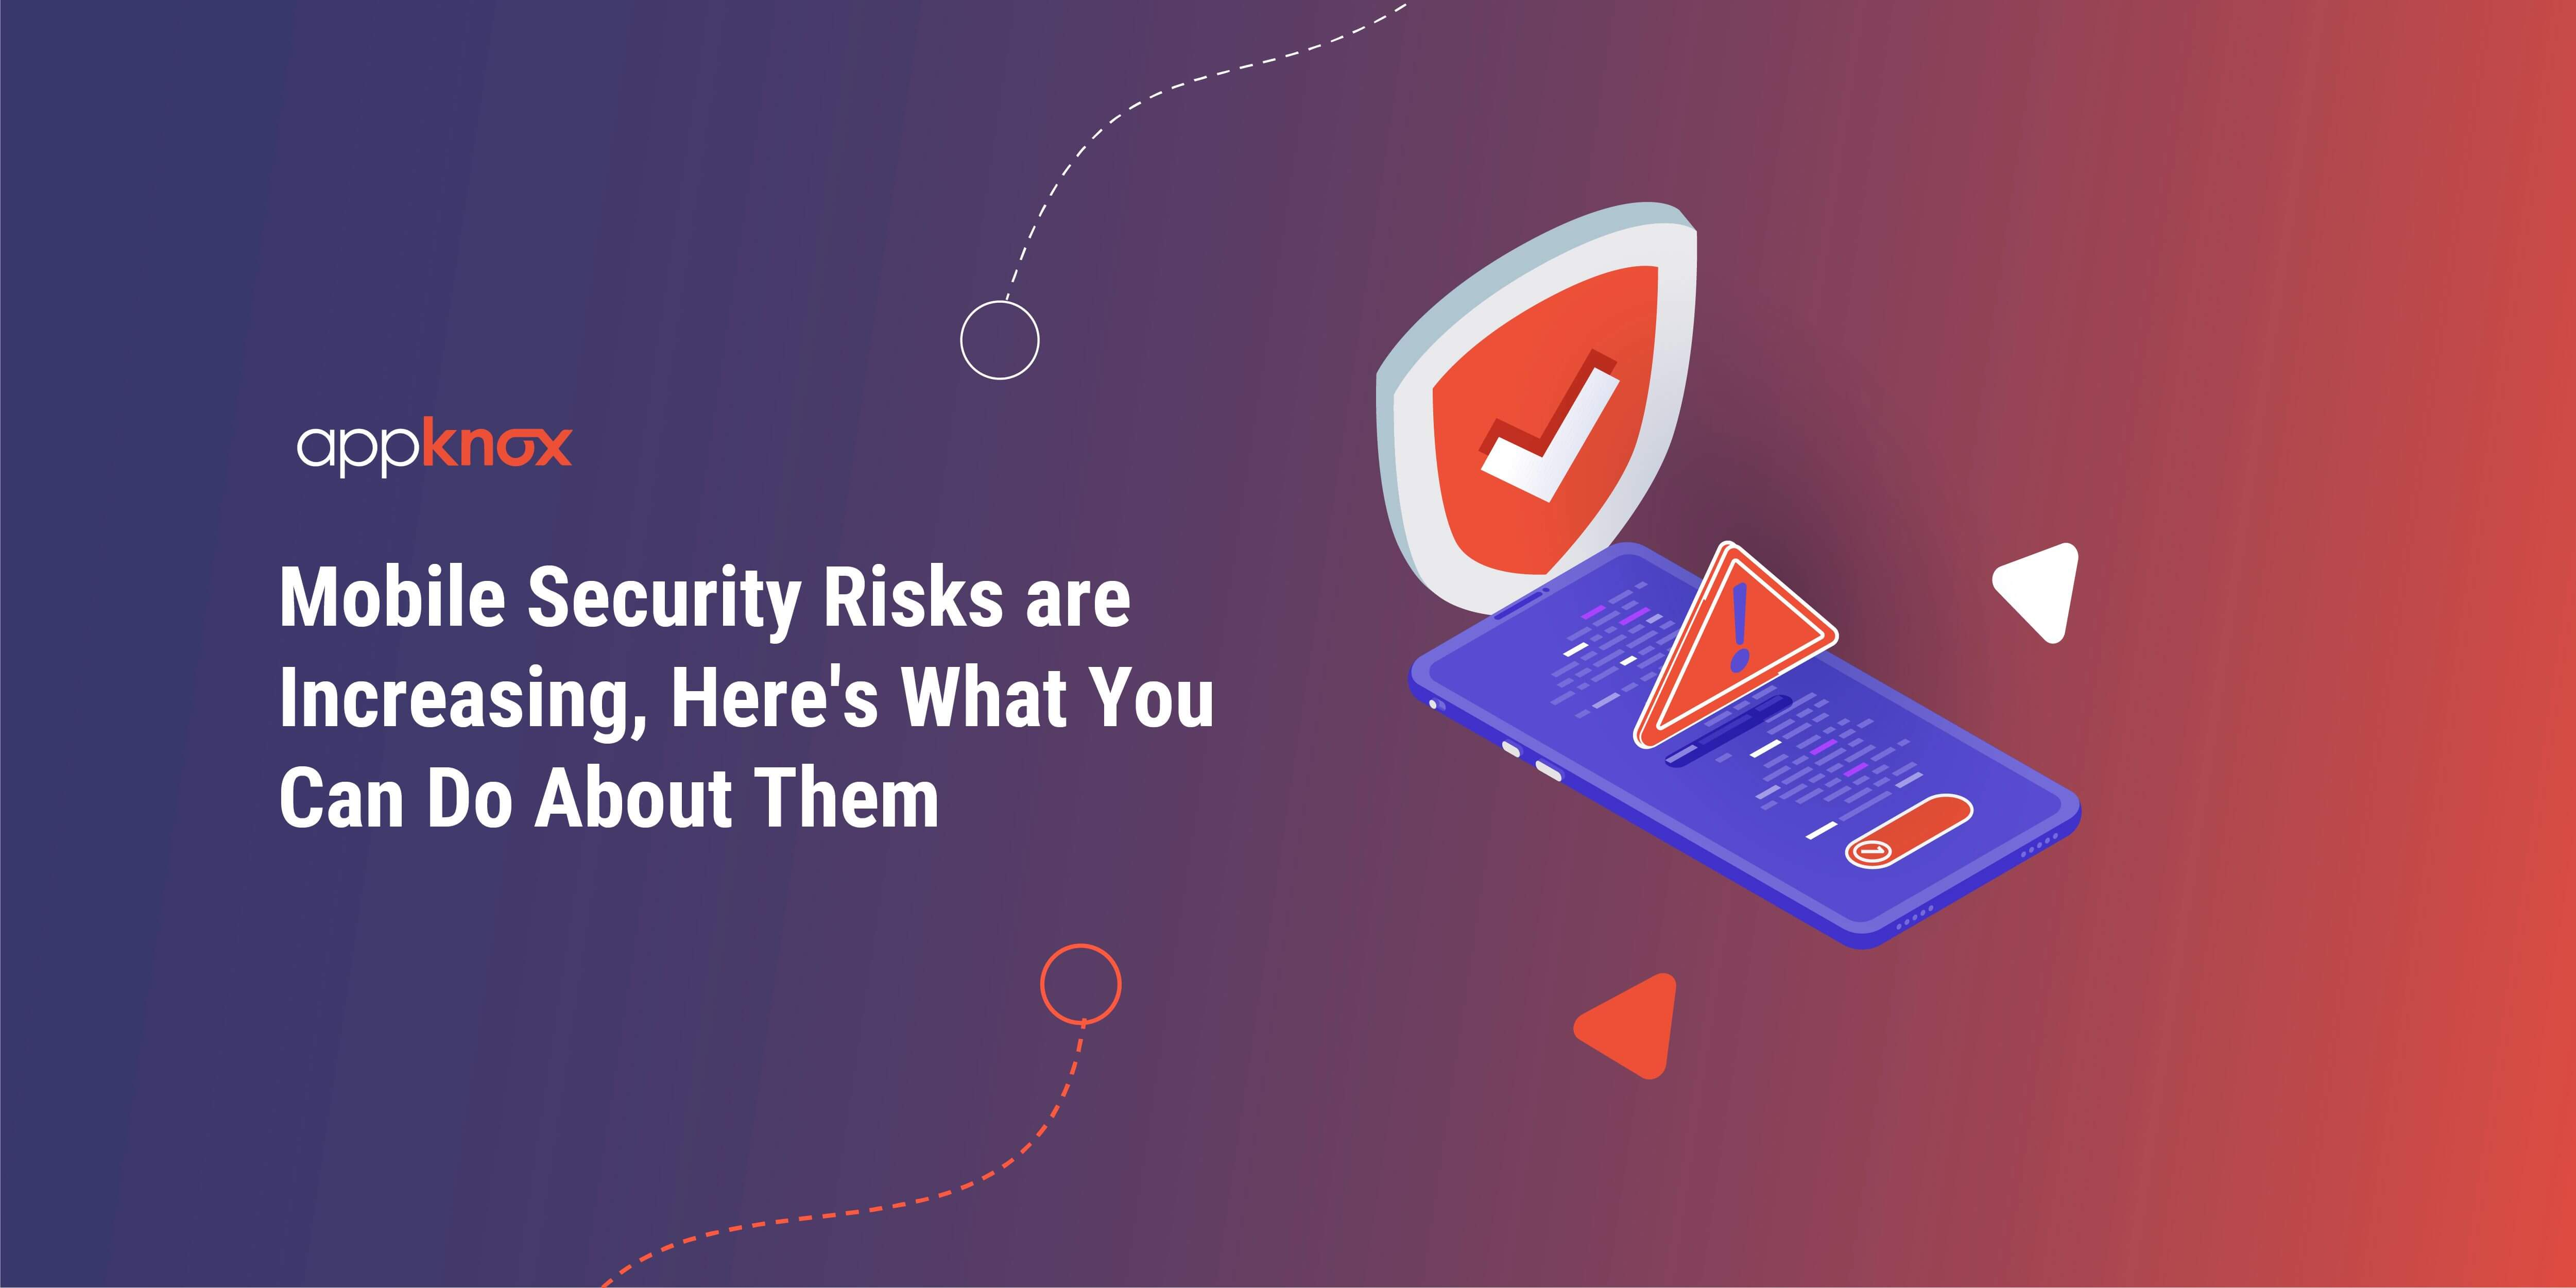 Mobile Security Risks are Increasing